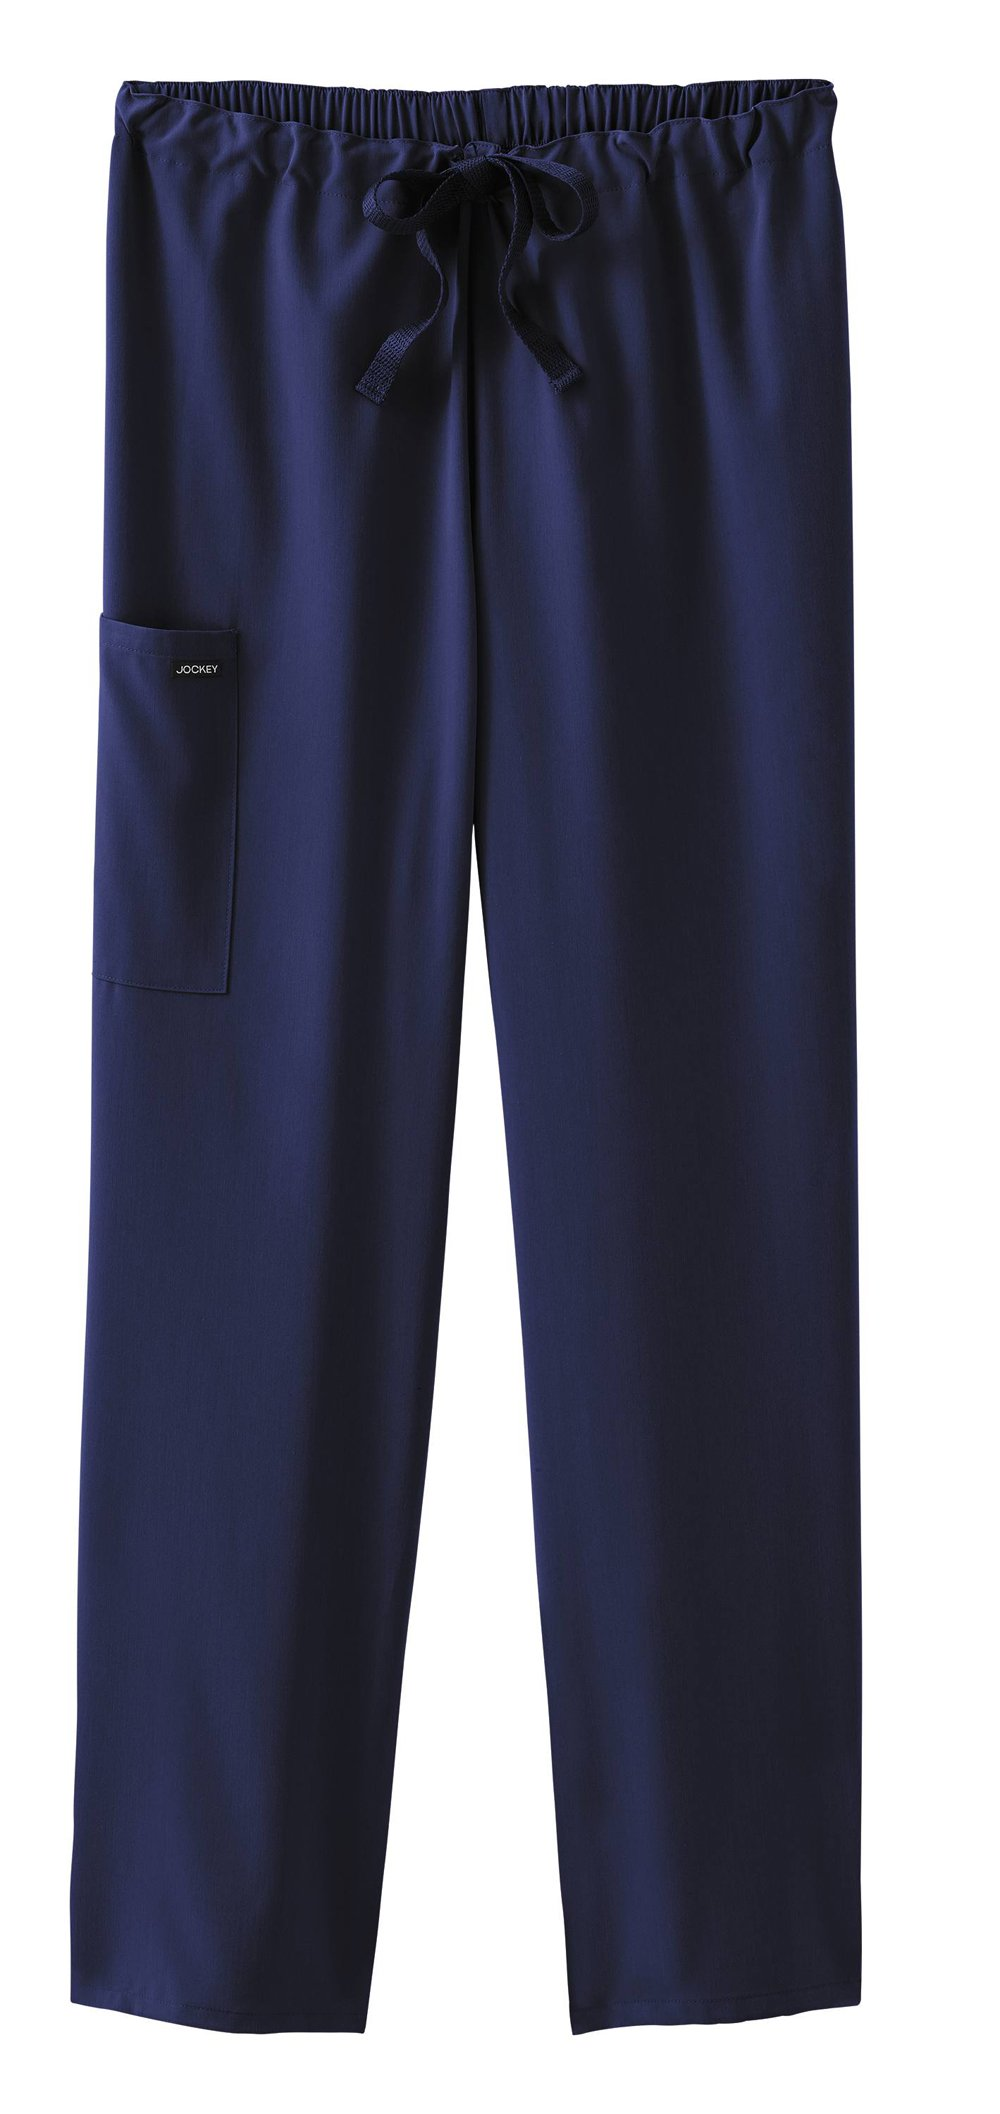 Classic Fit Collection by Jockey Unisex Drawstring Elastic Pant Medium Petite New Navy